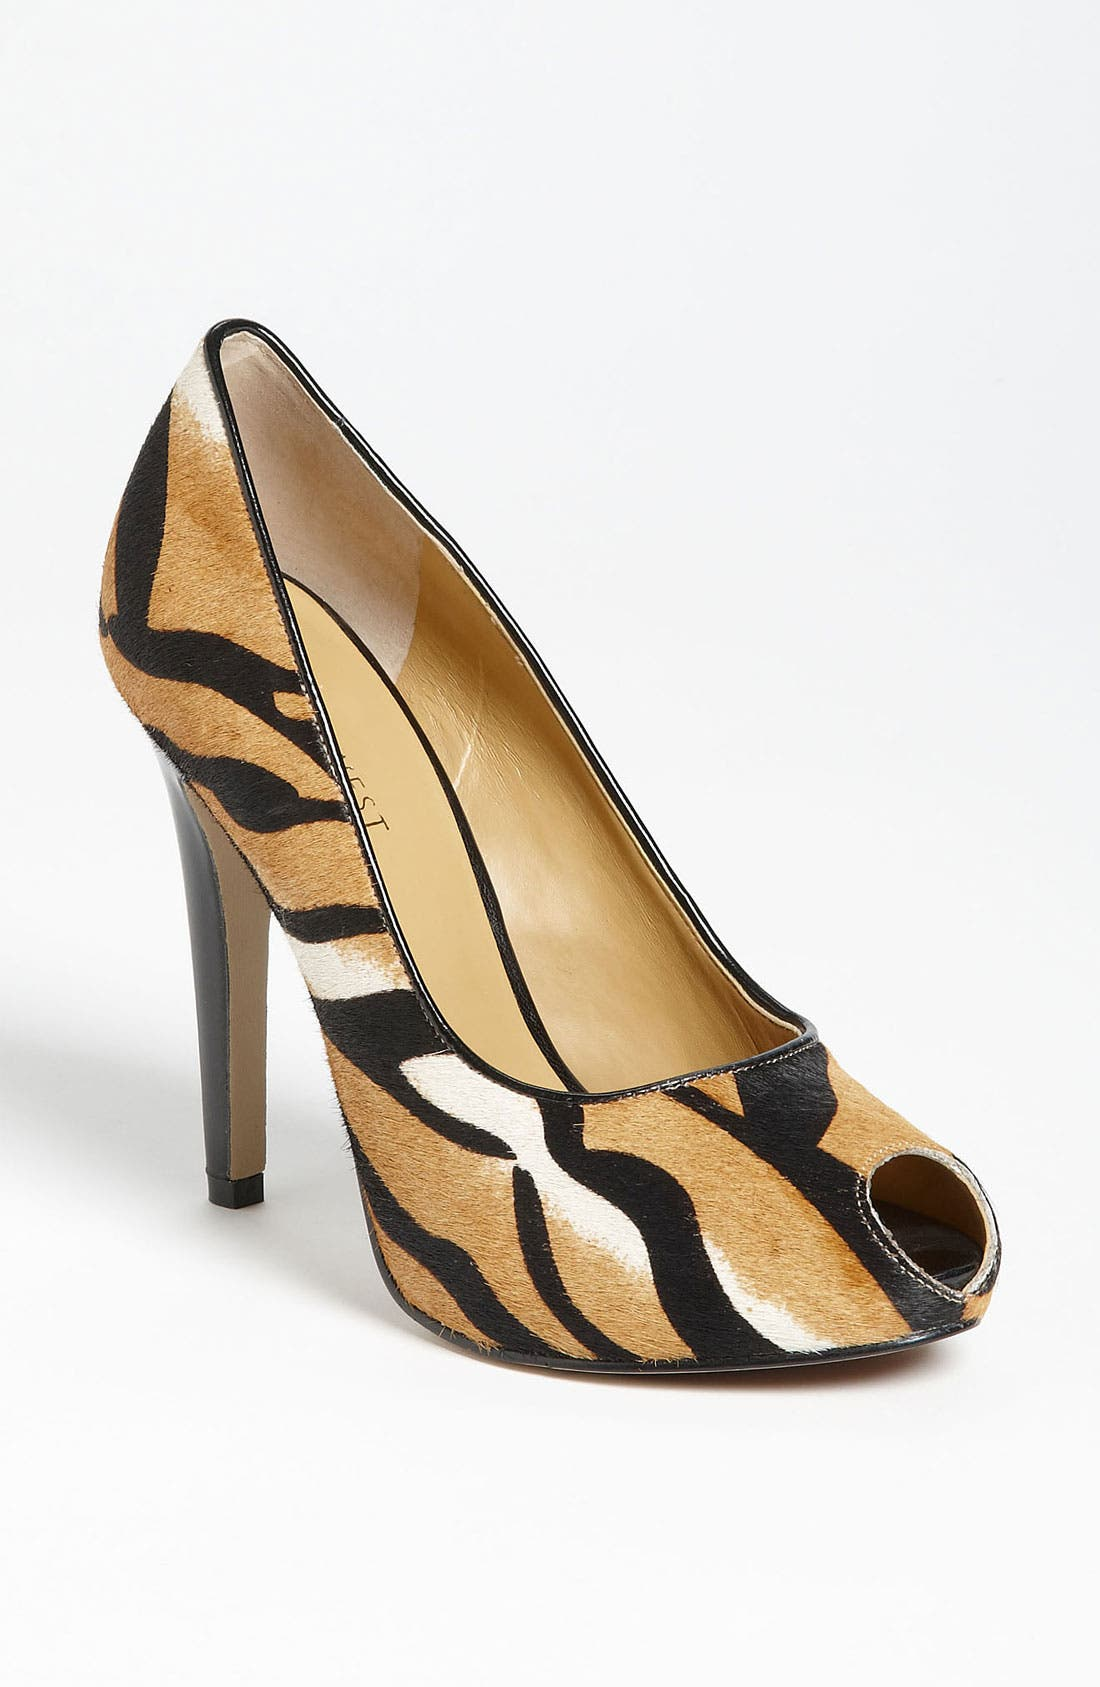 Main Image - Nine West 'Justcruise' Pump